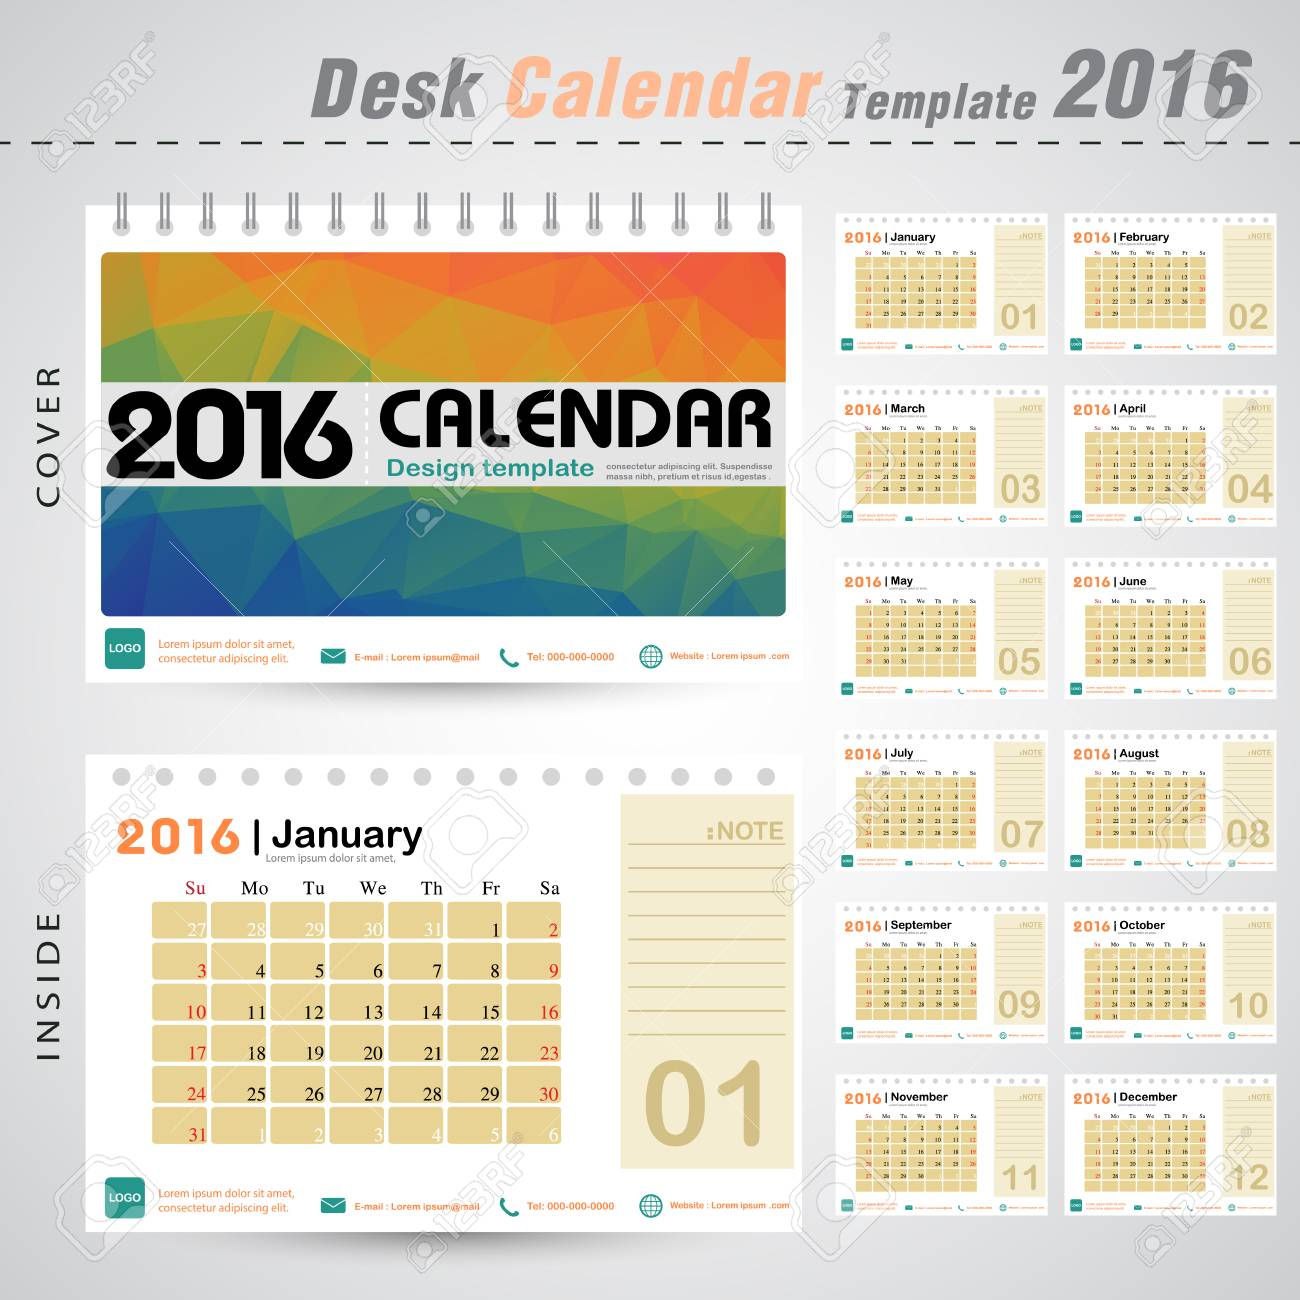 desk calendar 2016 vector design template with colorful with